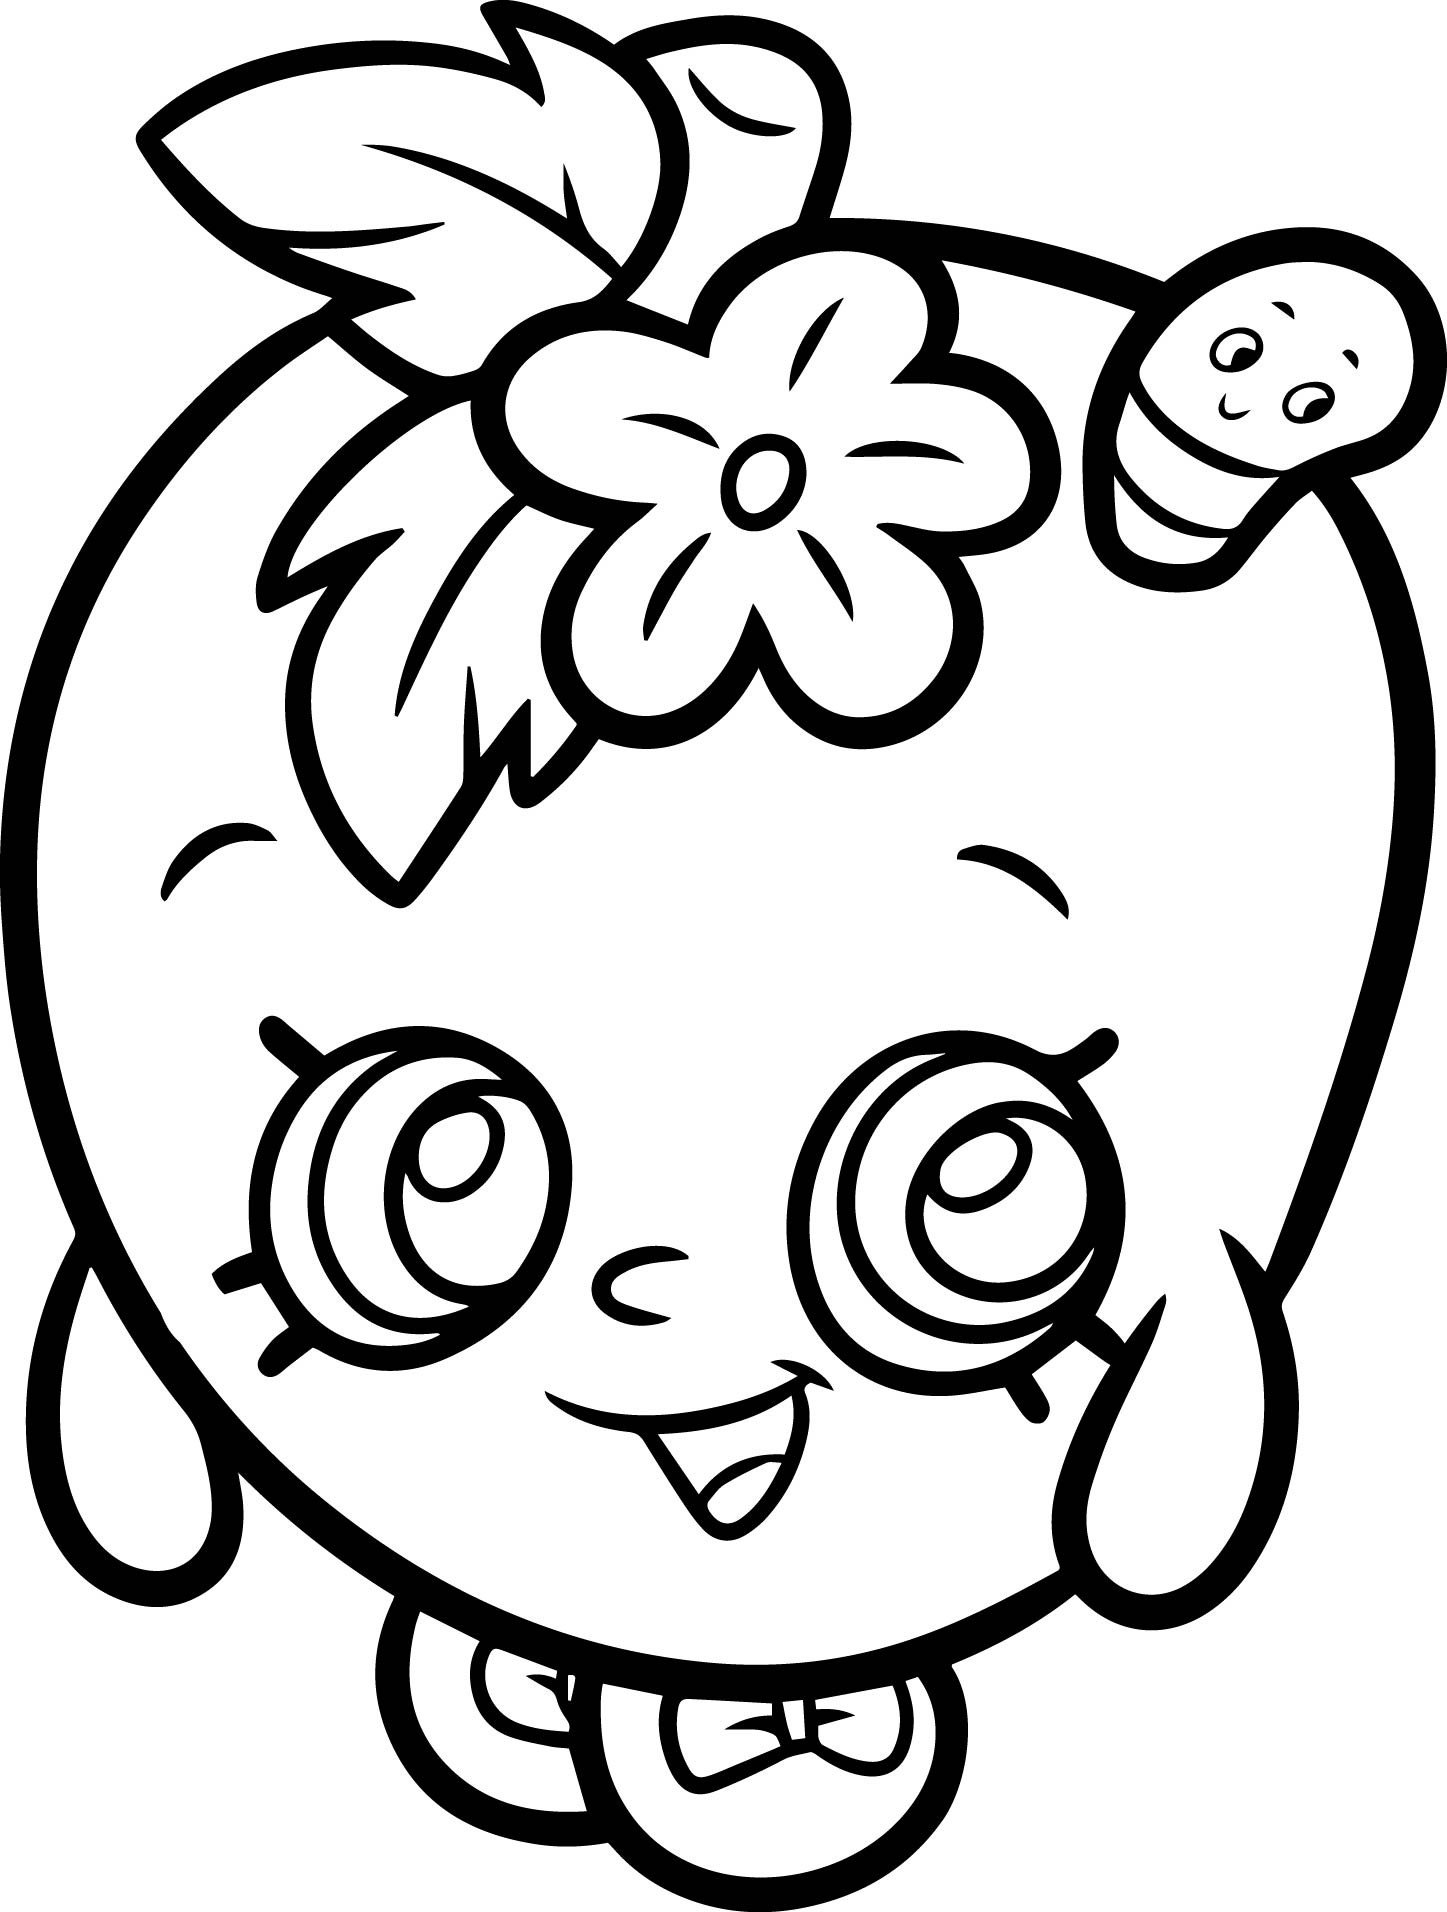 Coloring Pages For Girls Shopkins Apple  Apple Blossom From Shopkins Coloring Page